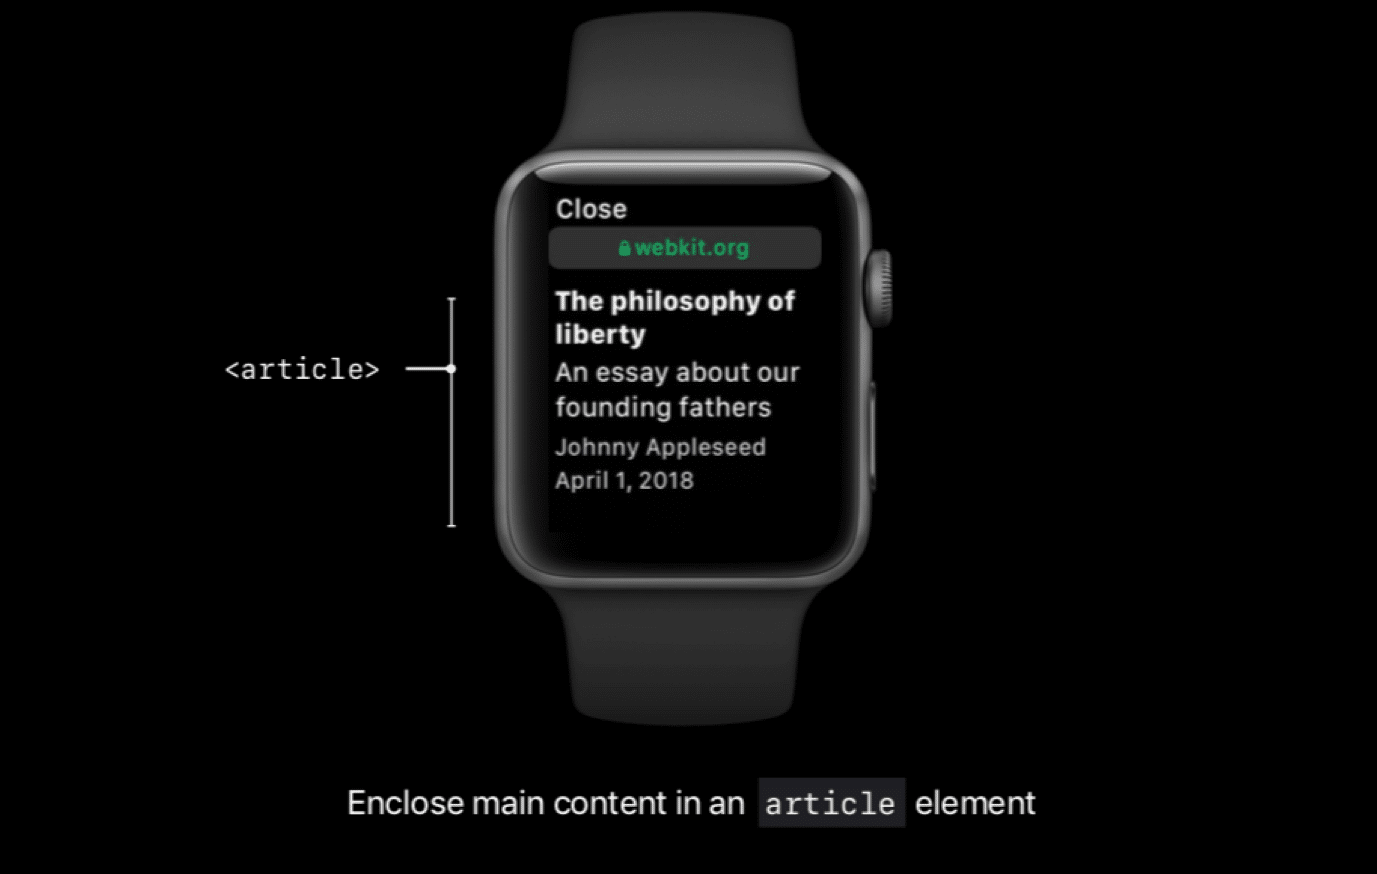 diagram of an article element wrapping content on an Apple Watch